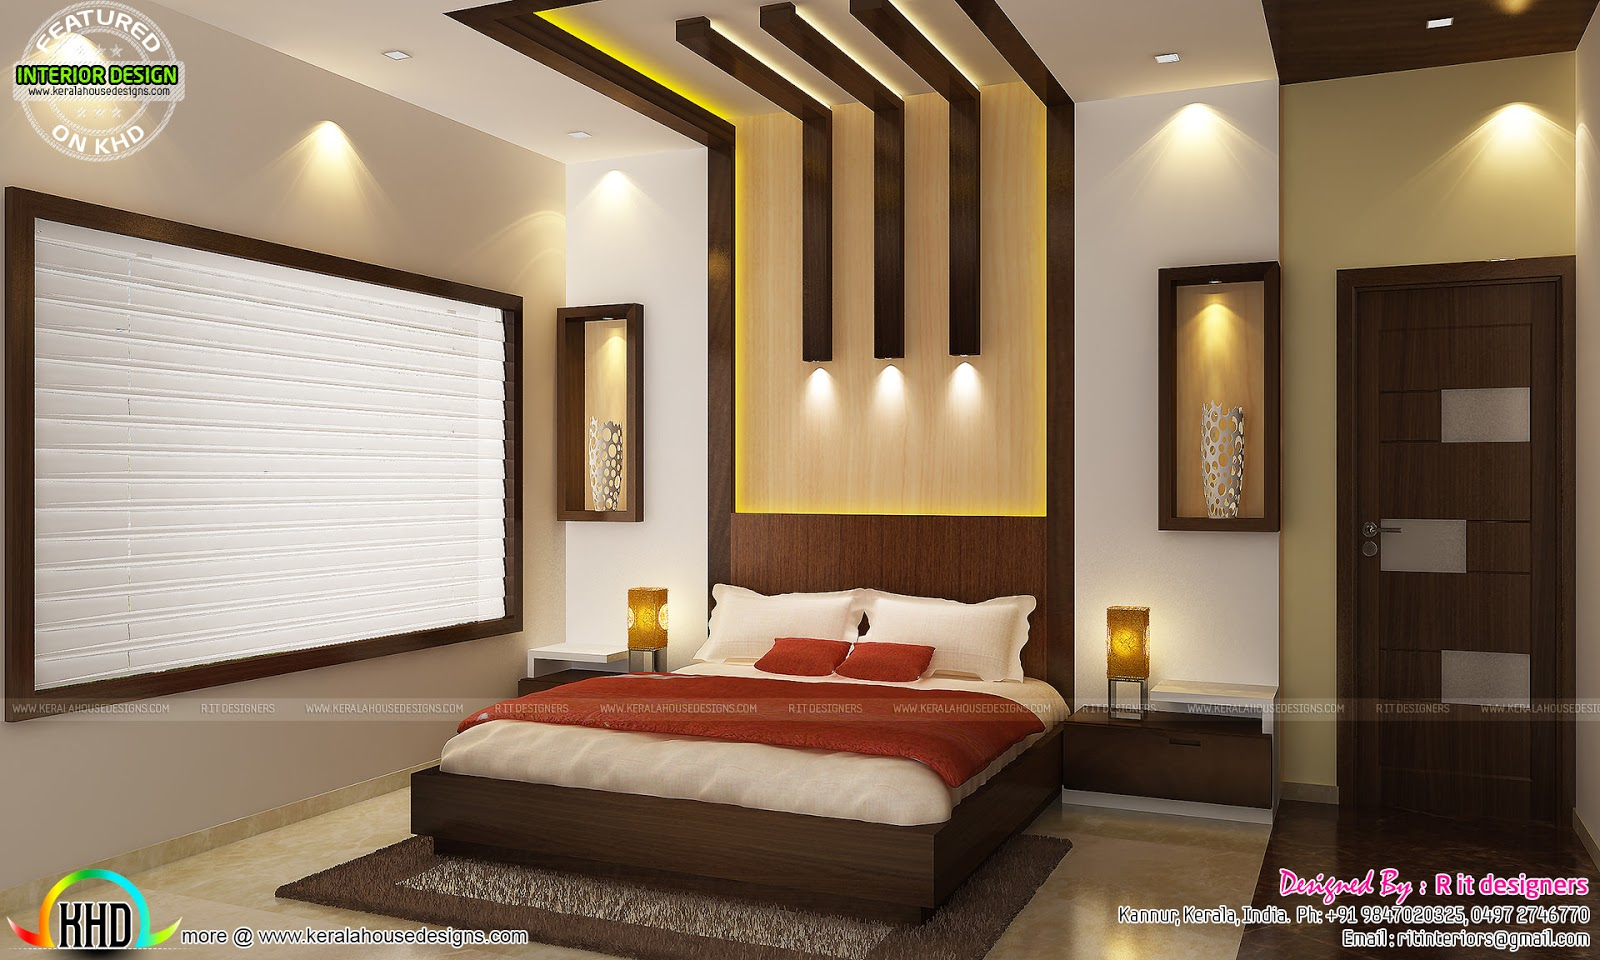 Kitchen living bedroom dining interior decor kerala Low cost interior design ideas india